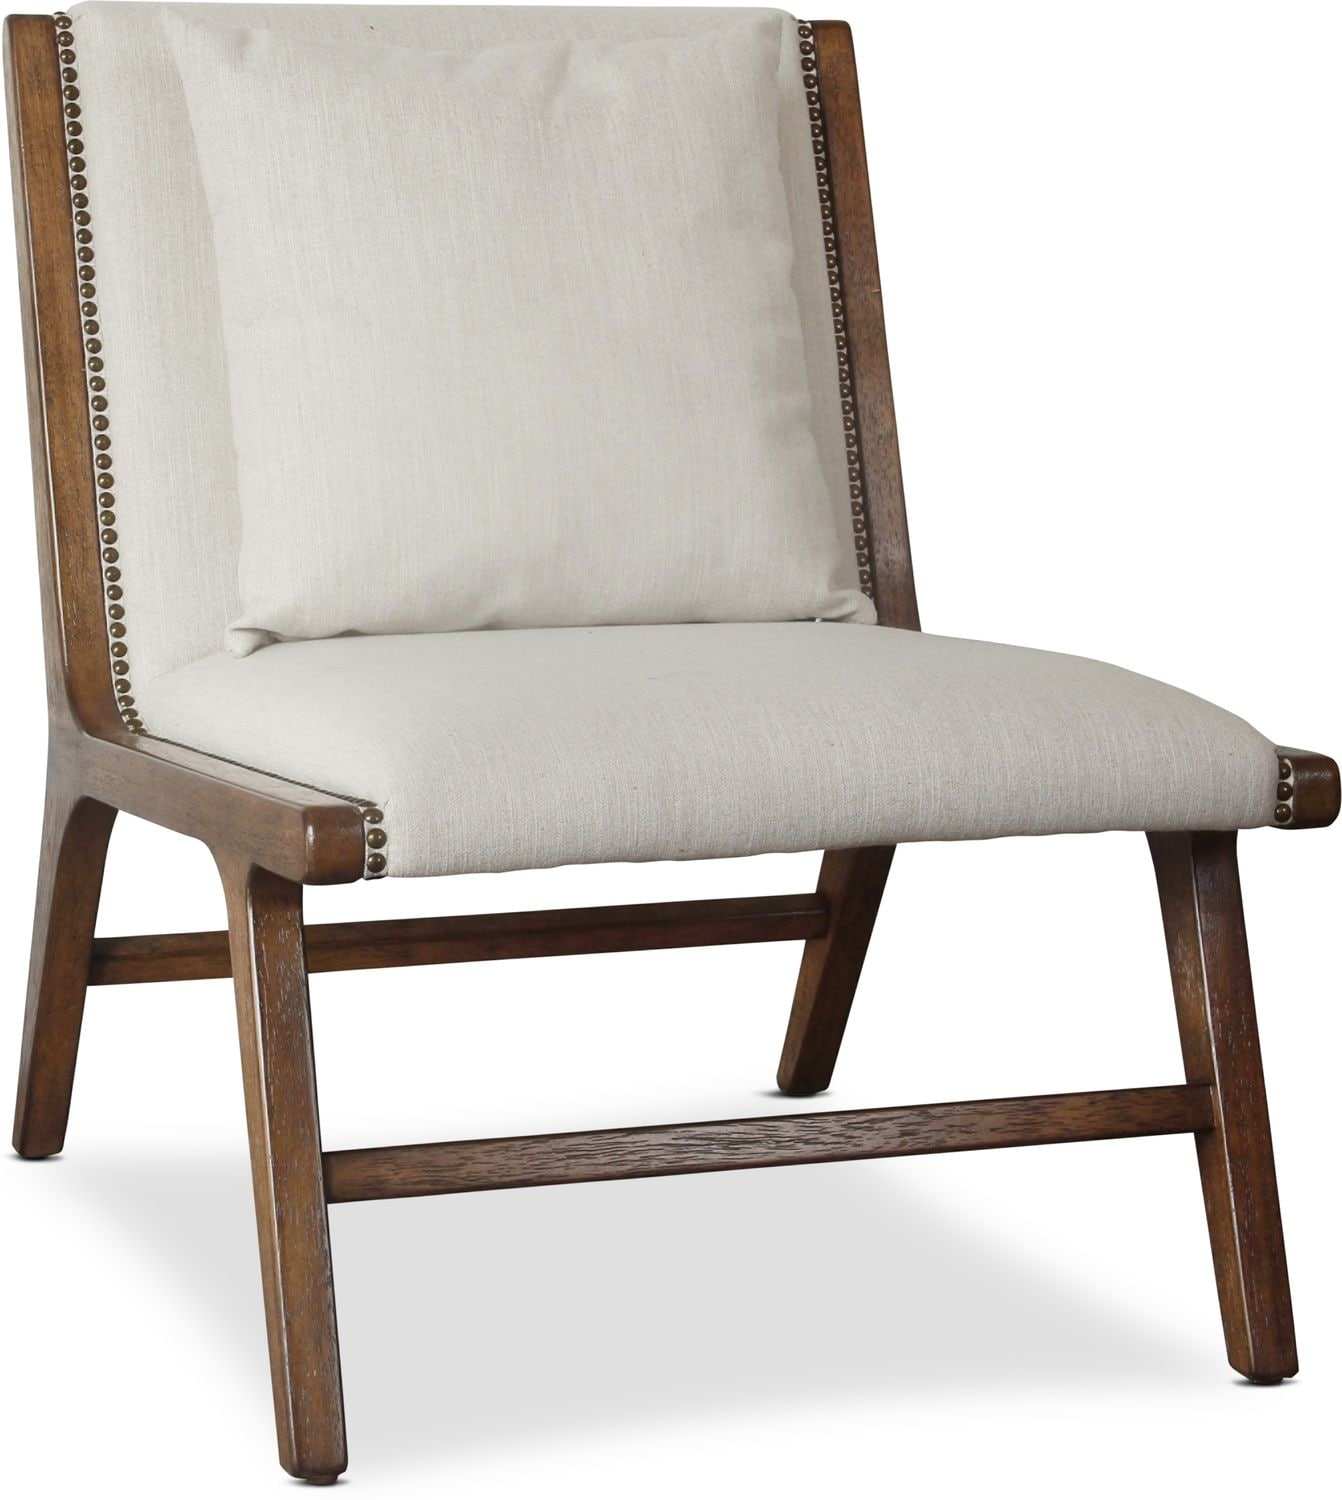 Living Room Furniture - Yuma Accent Chair